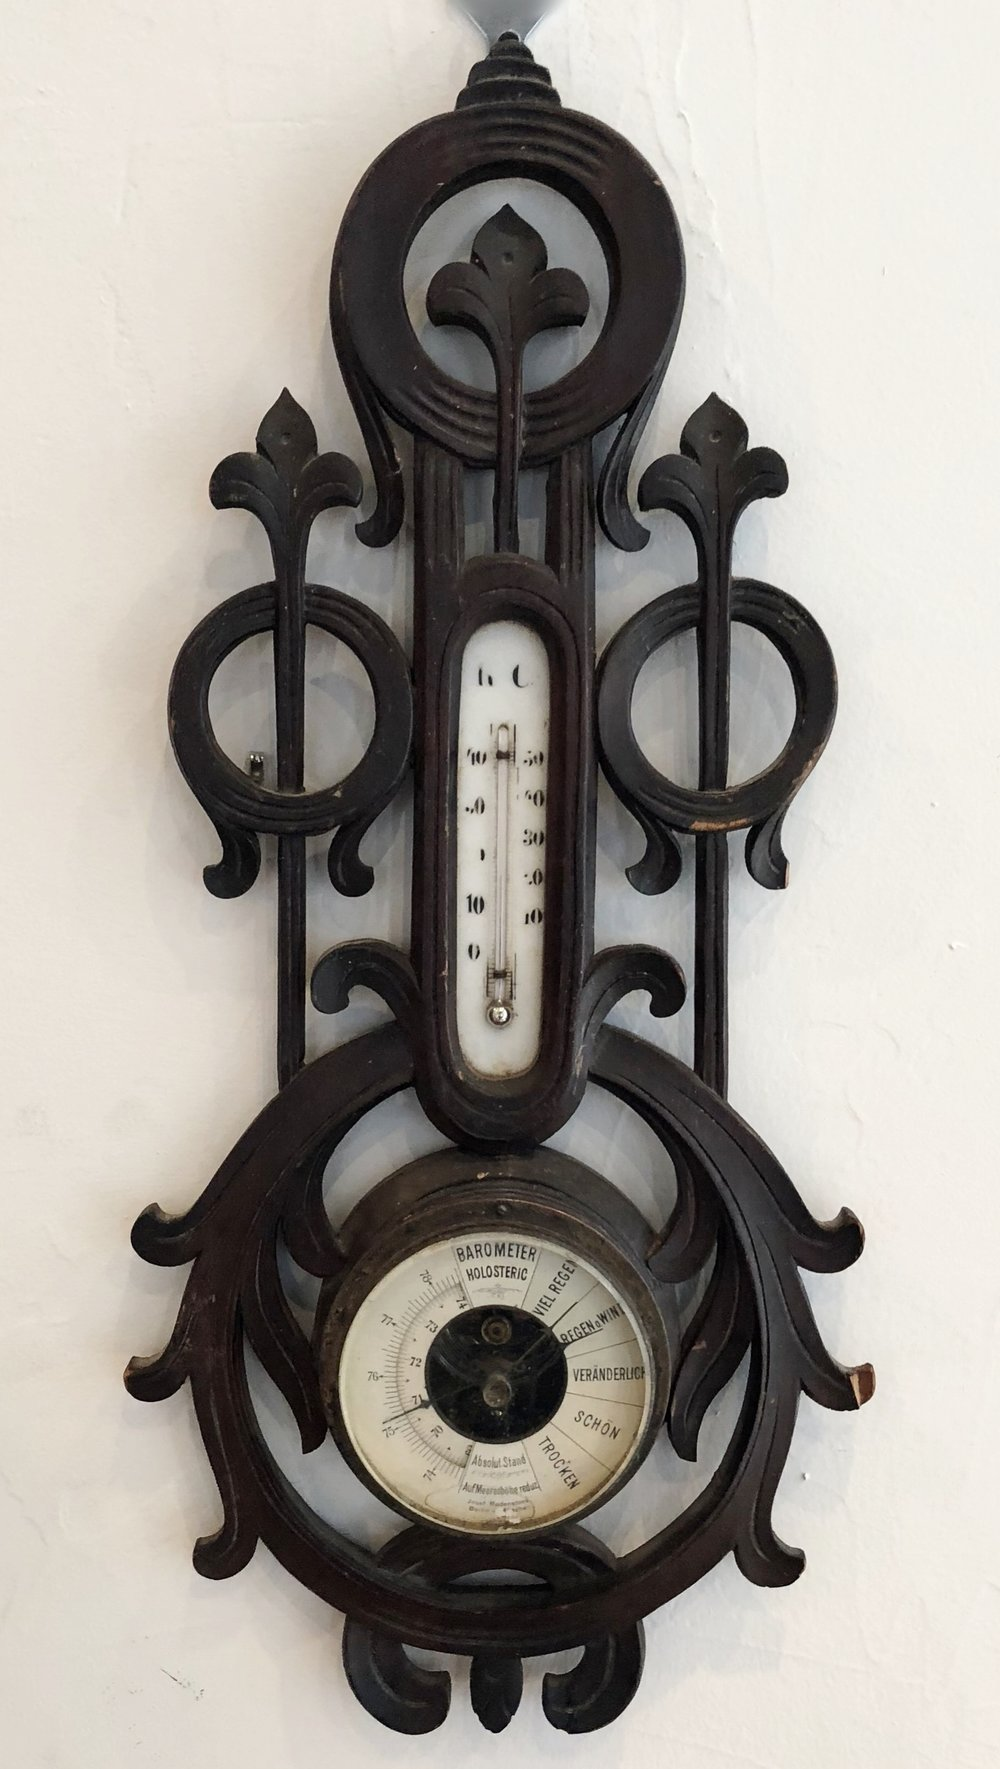 "Antique Hand Carved Wood Barometer   20.25"" H x 9.25"" W  $1200   To order please call us at 202-234-5926 or email at boutique@darrylcarter.com. Please note pricing excludes taxes and shipping."